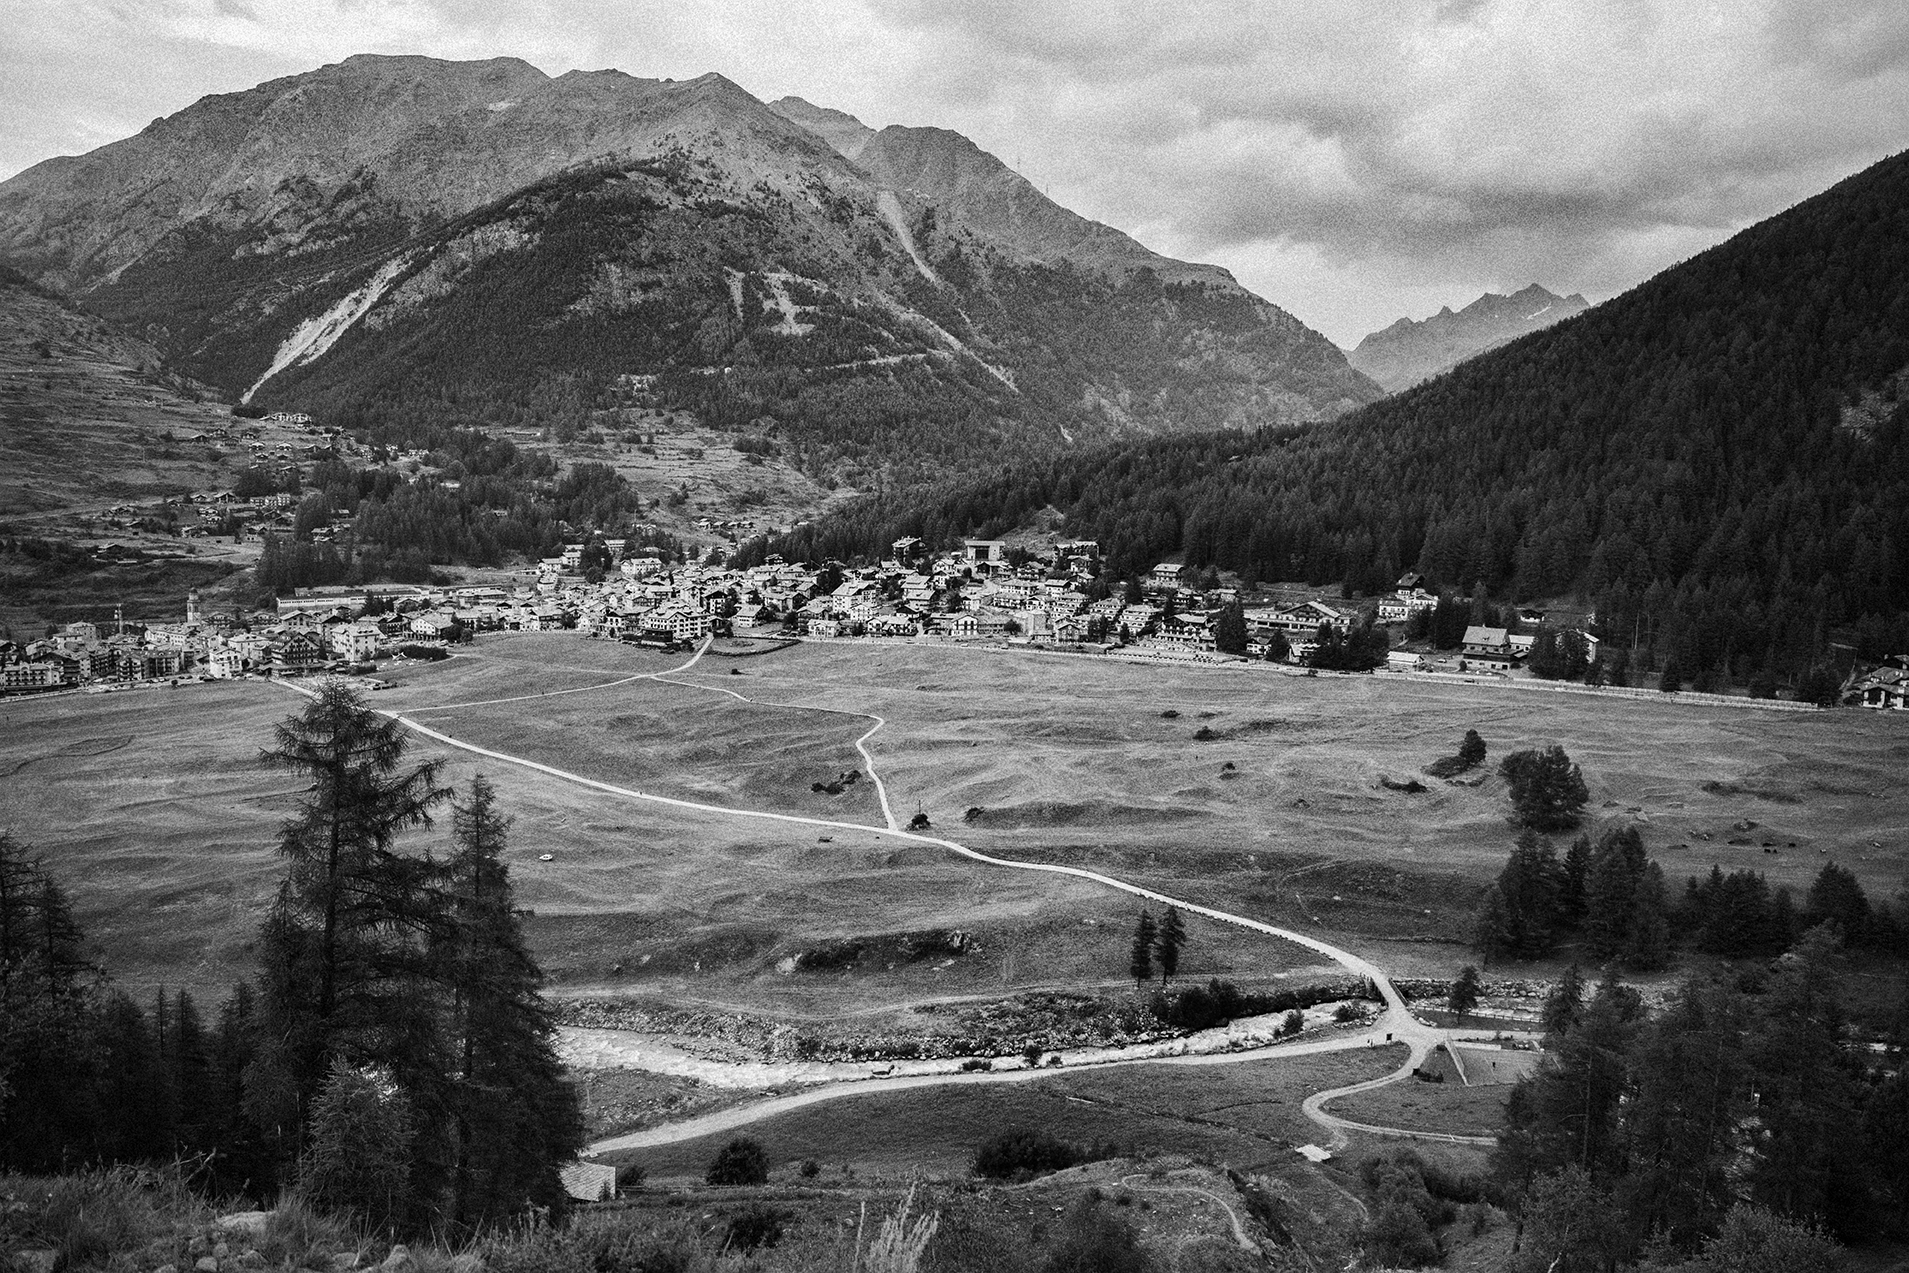 Cogne Valley . In Cogne valley chefs and farmers practice culinary traditions that can be traced back thousands of years. As peaceful as this view was I felt an urgent concern for this place. The mountains that surround the town are literally crumbling due to manmade climate change and trees are dying. The ecological breakdown above will adversely impact the town and valley below.